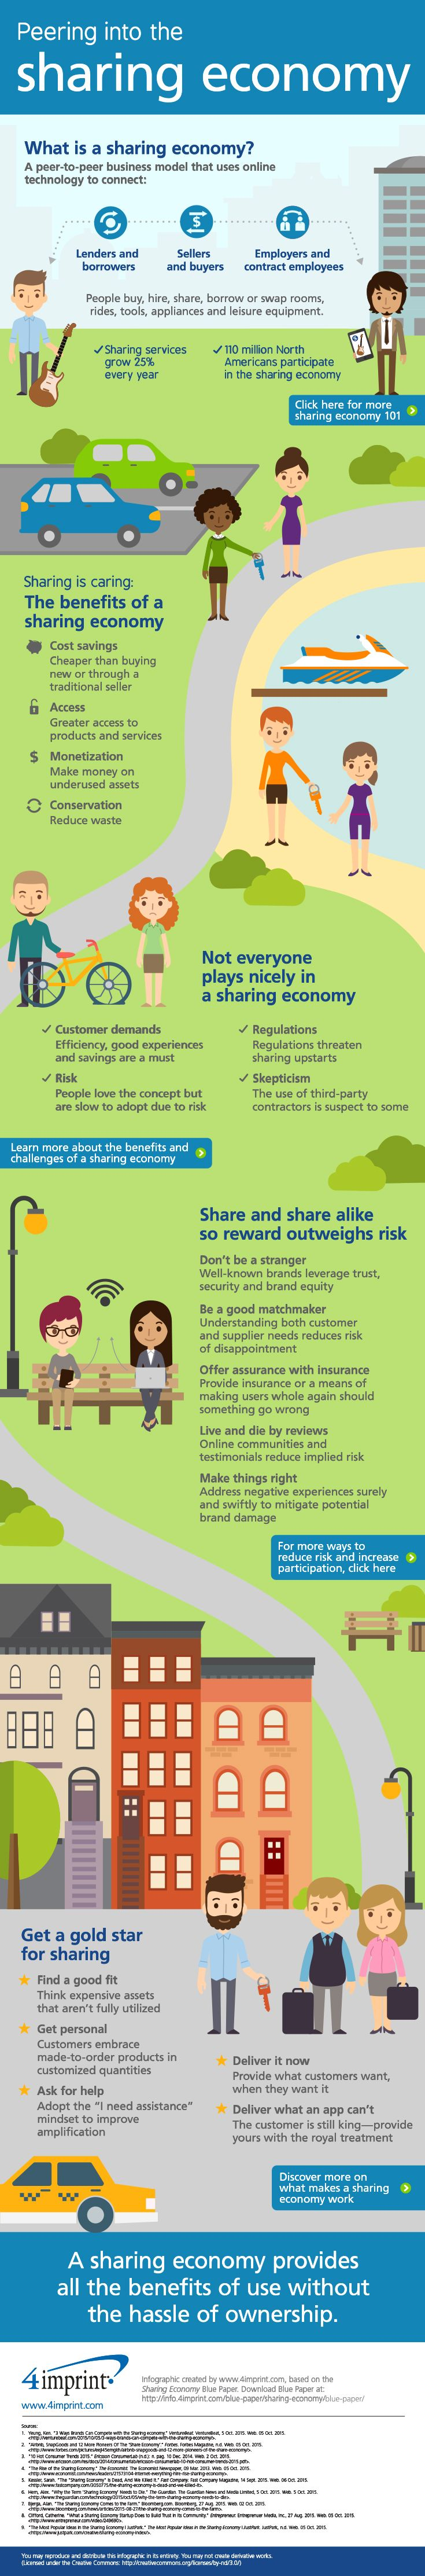 This infographic defines the sharing economy, outlines its benefits and challenges, and offers tips for finding success with this type of business model.